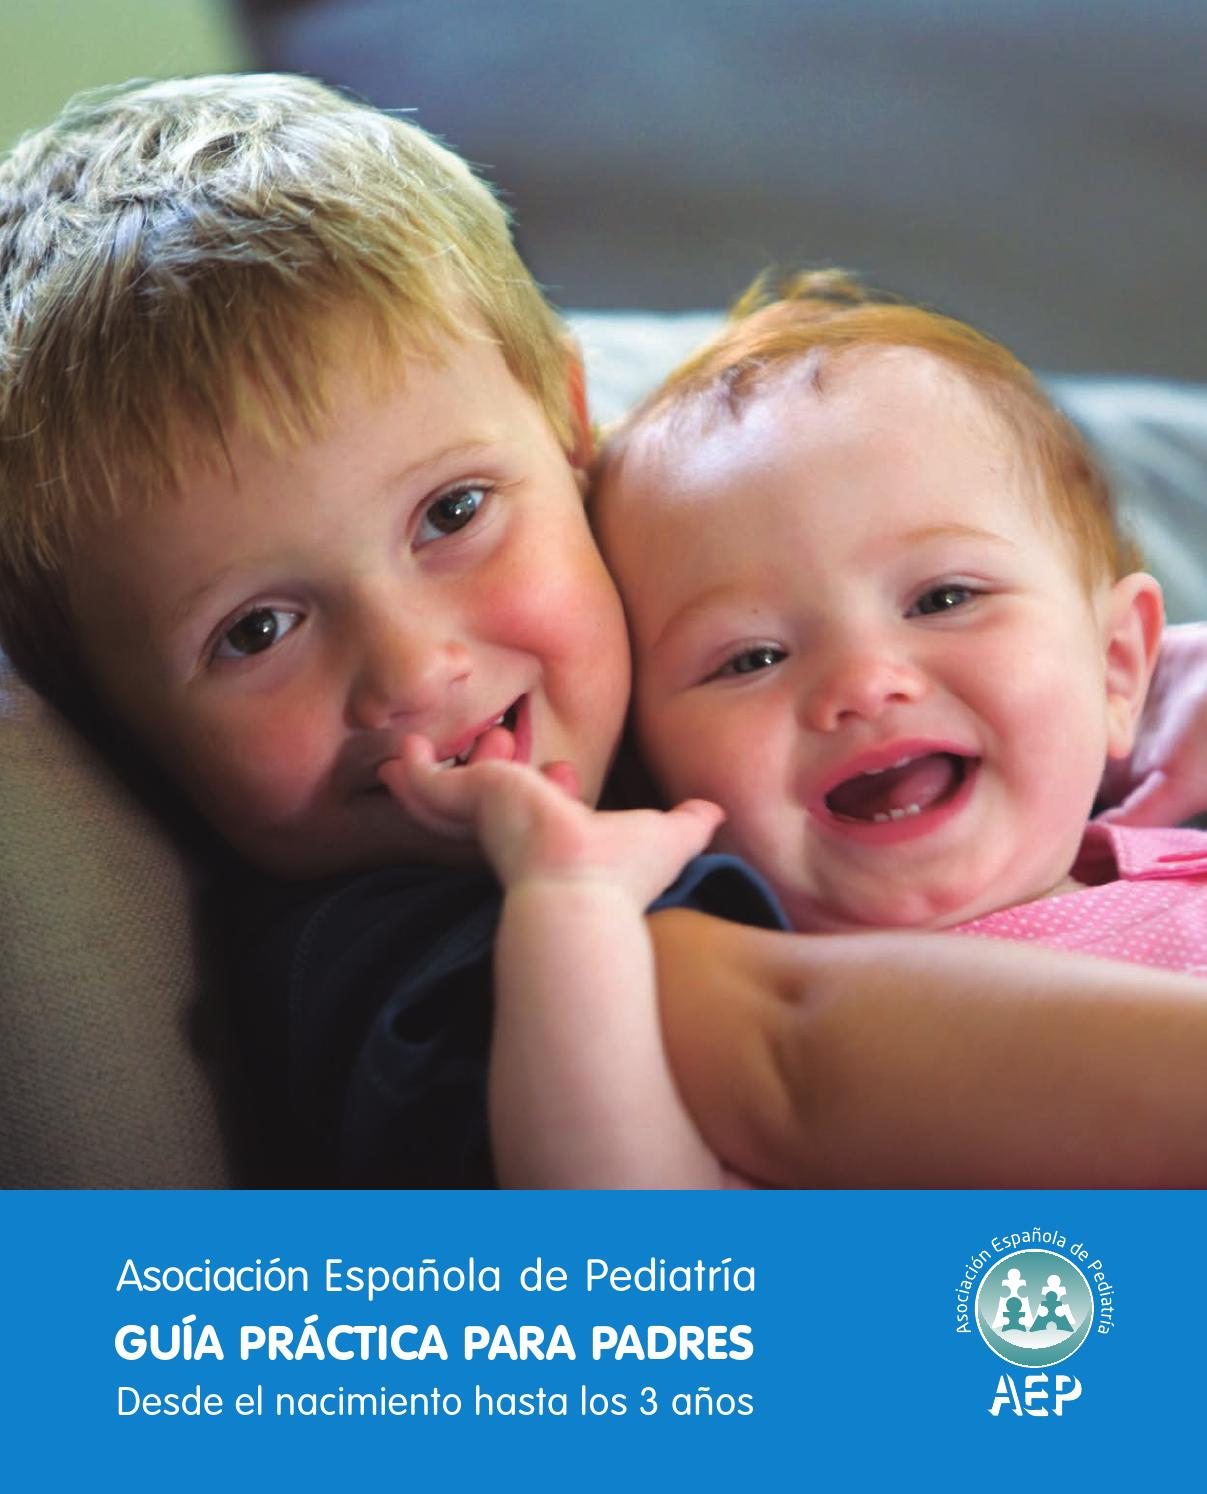 86268a22dccf Guia practica padres aep 1 2014 by dpc75 - issuu